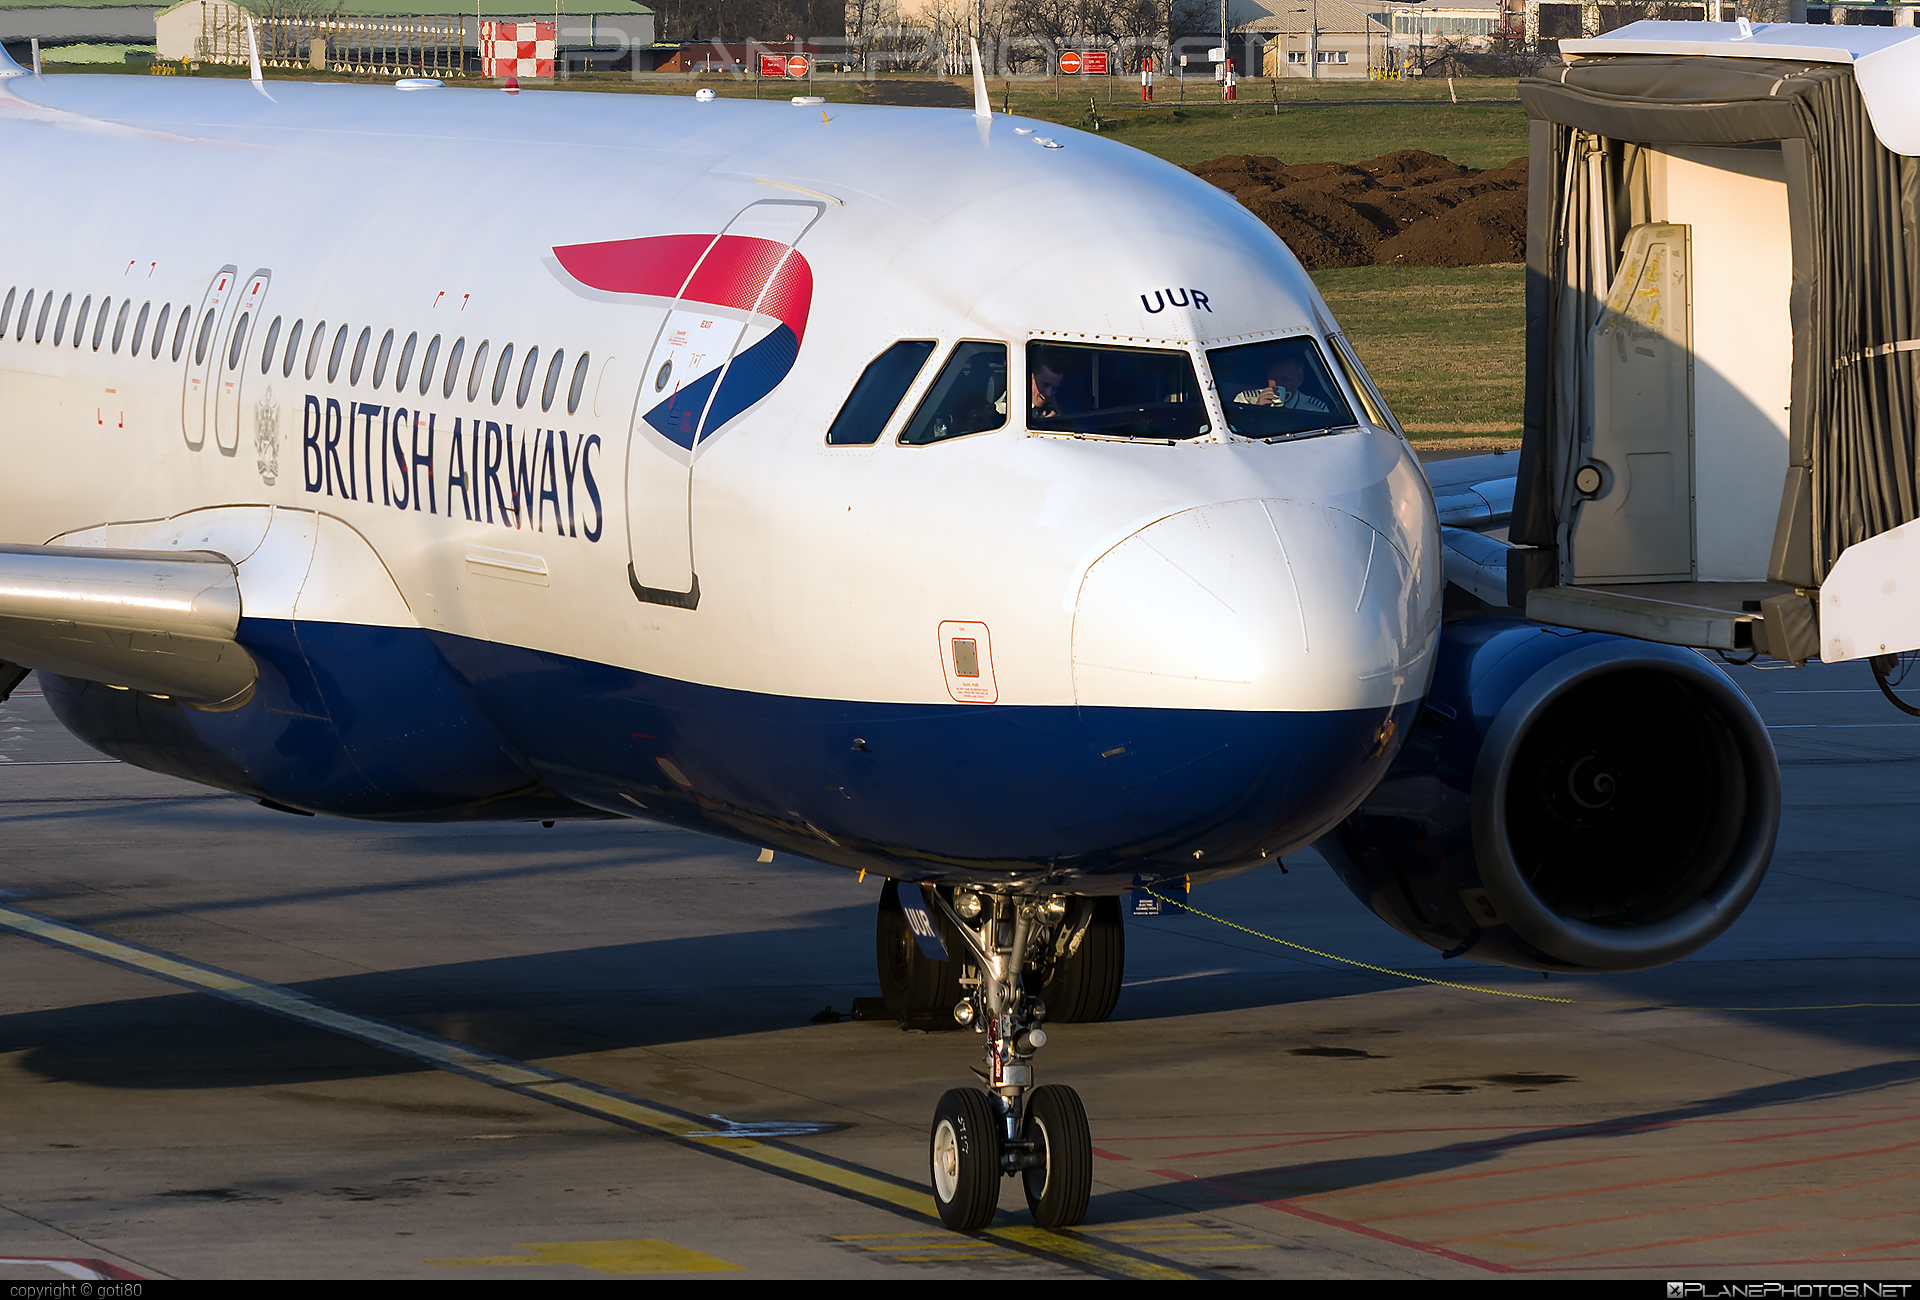 Airbus A320-232 - G-EUUR operated by British Airways #a320 #a320family #airbus #airbus320 #britishairways